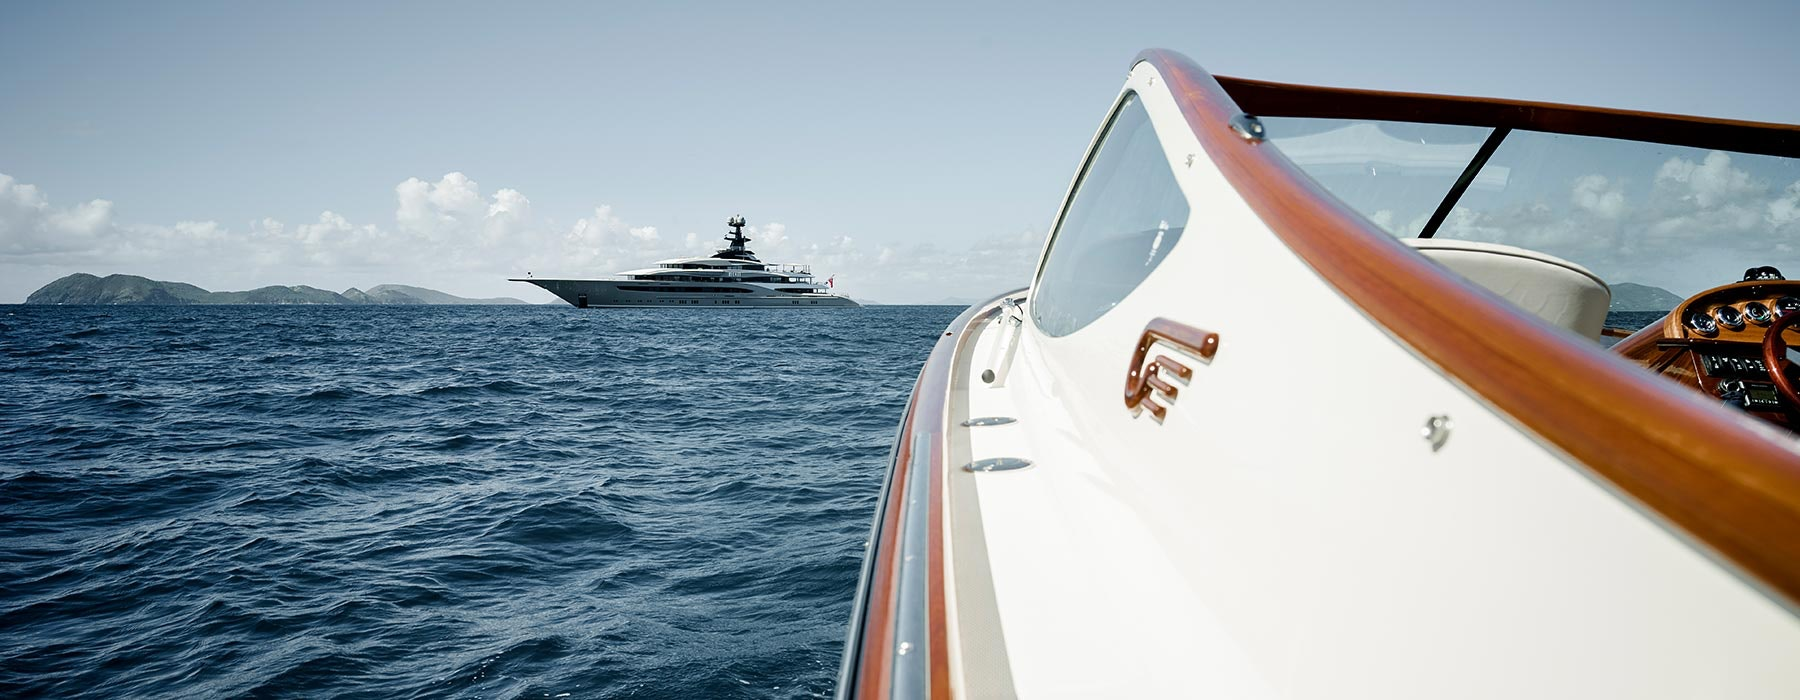 Buying A Luxury Yacht - Yacht Sales - Moran Yacht & Ship